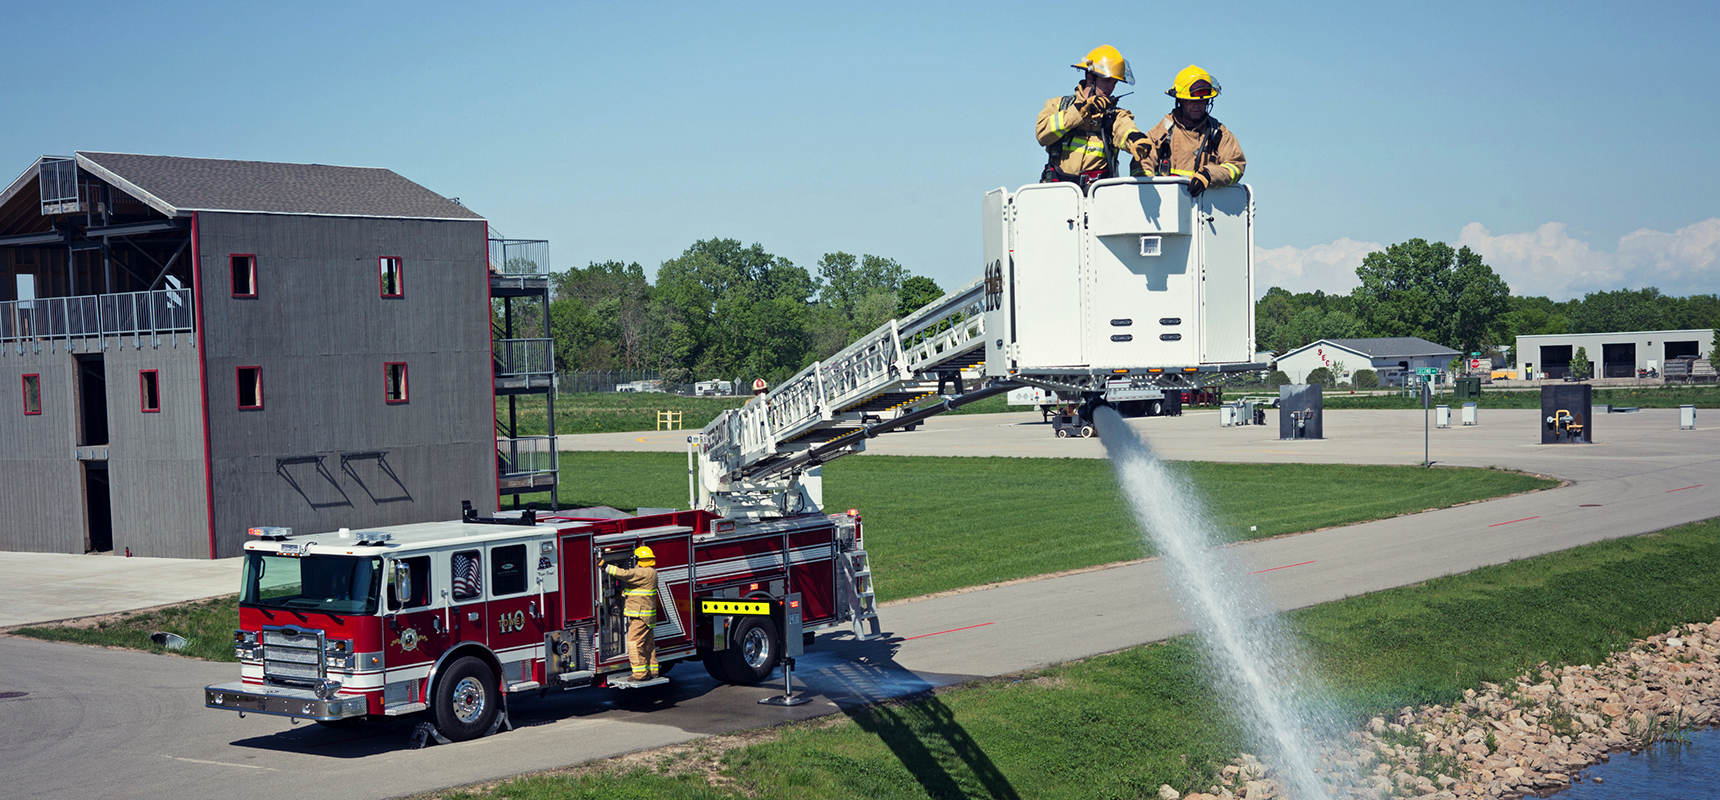 Pierce-Ascendant-110-Foot-Aerial-Platform-Purchased-by-Town-of-Taber-Fire-Dept-Header.png